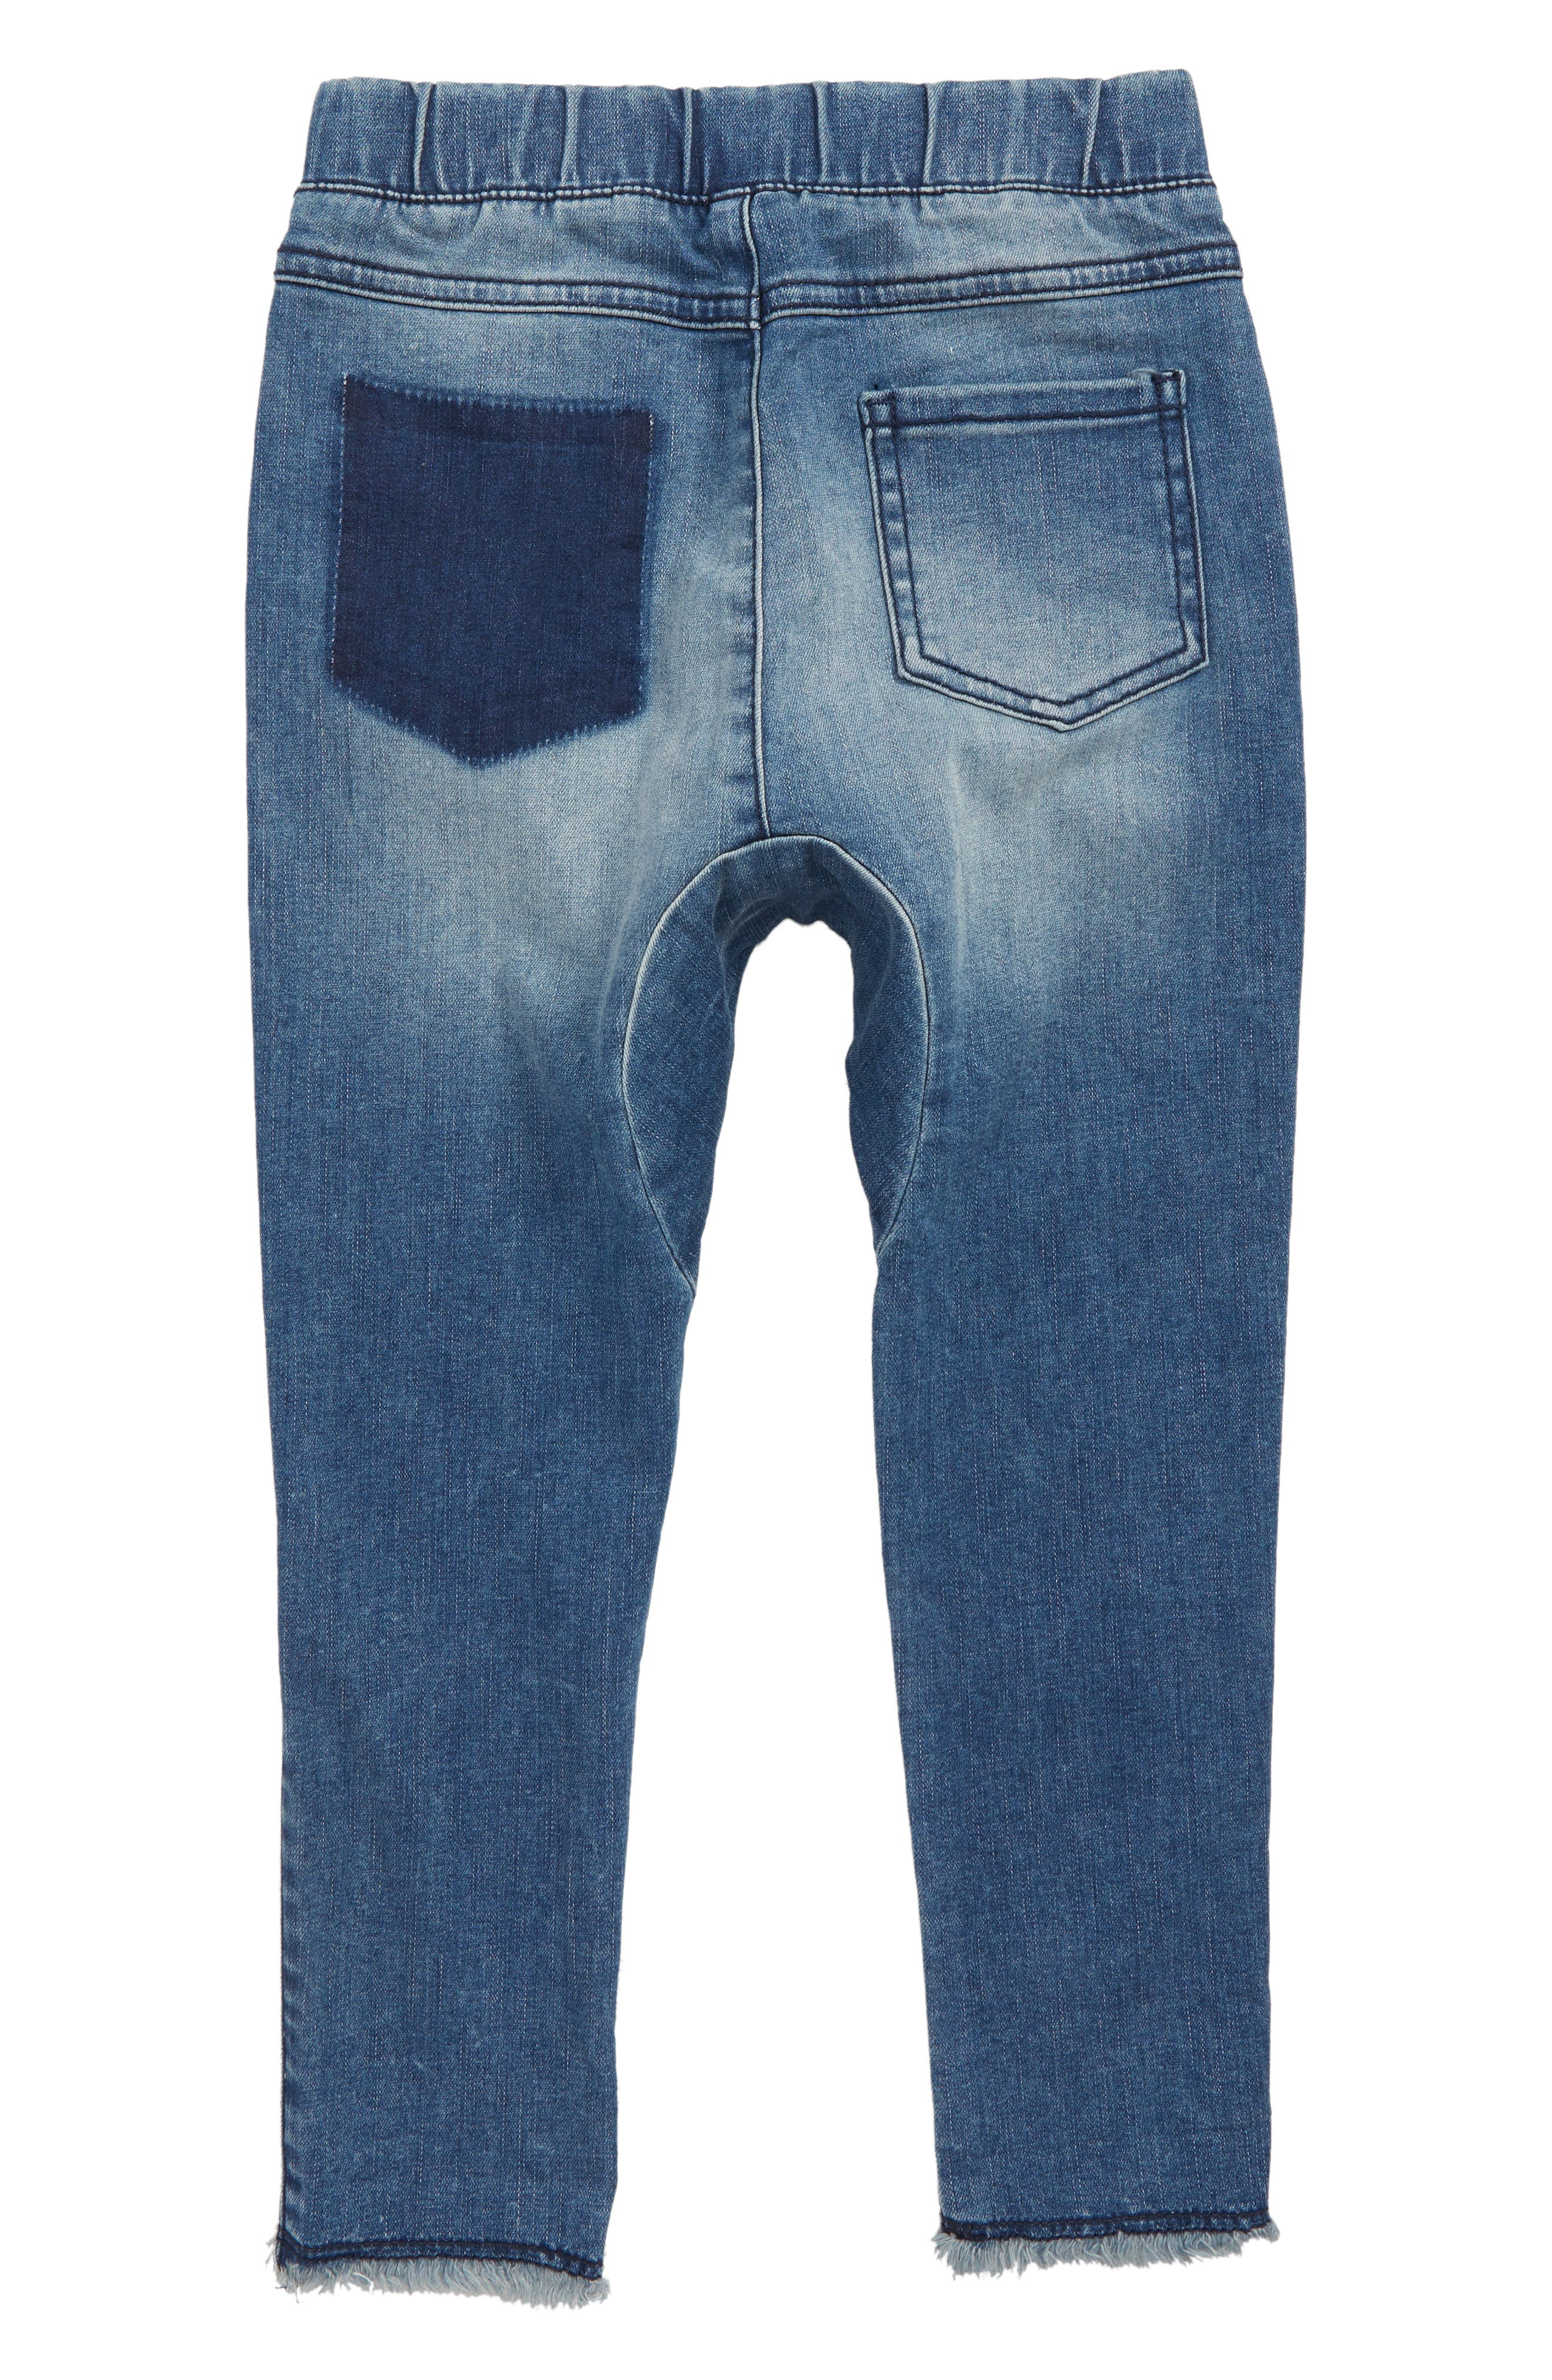 Shadow Patch Jeans,                             Alternate thumbnail 2, color,                             BLUE SHINE WASH